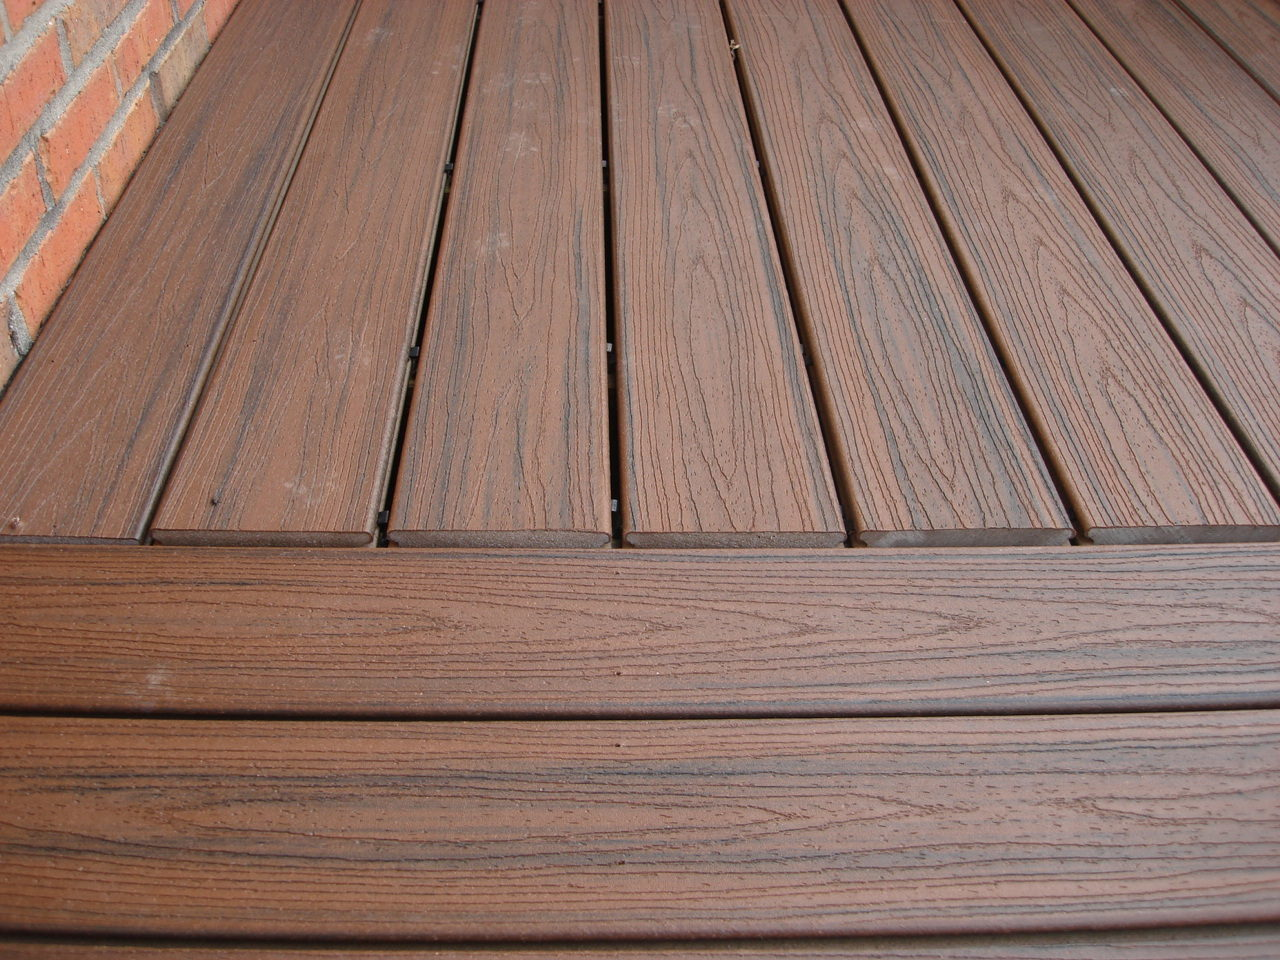 Top reviews and complaints about trex composite decking